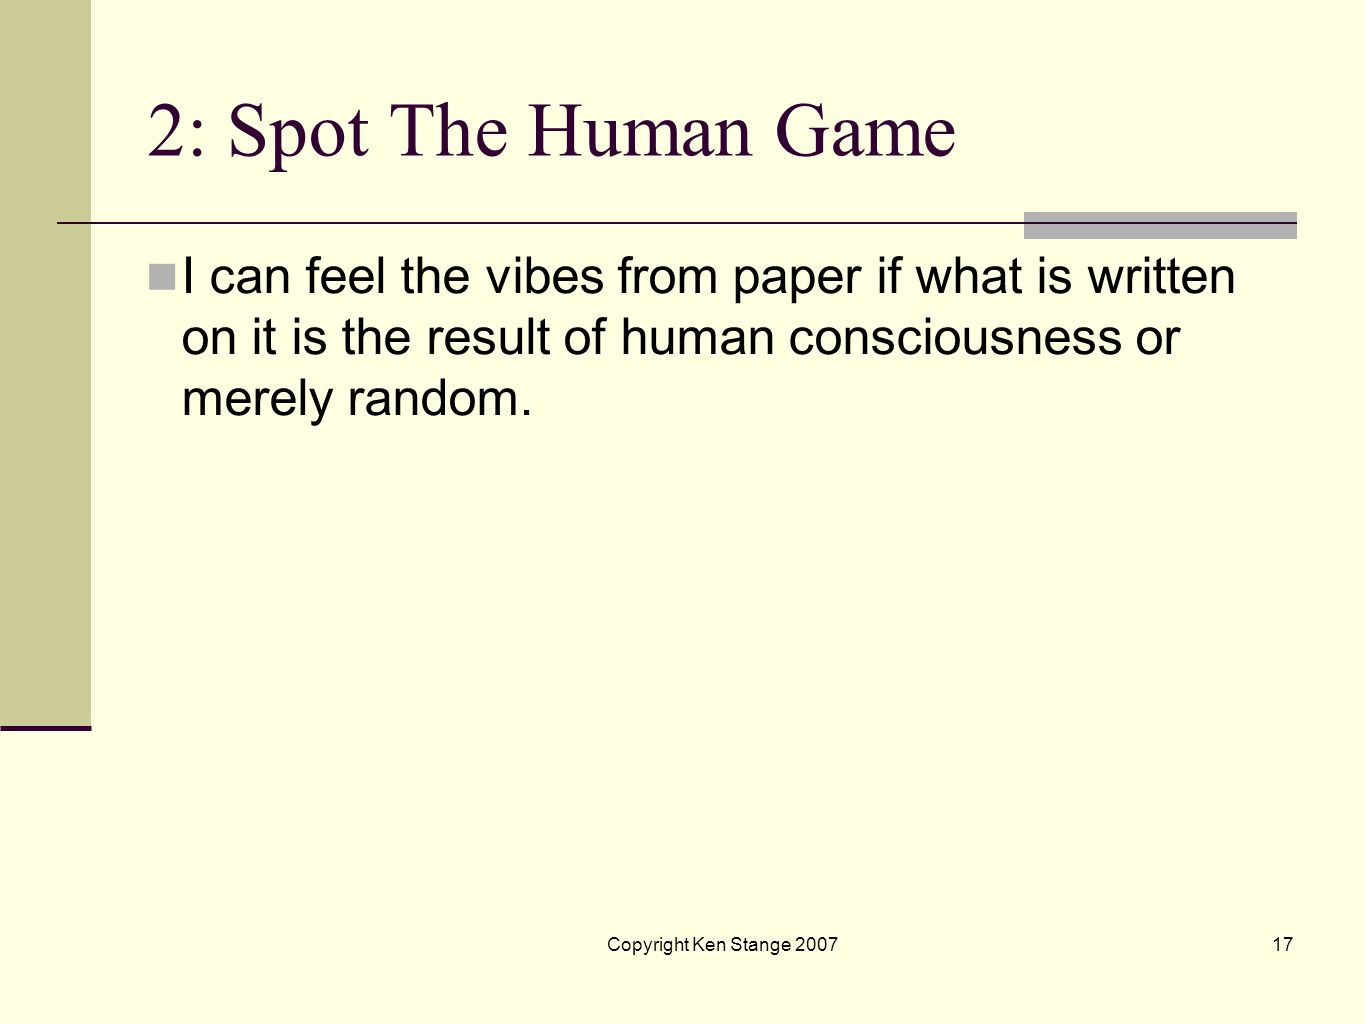 2: Spot The Human GameI can feel the vibes from paper if what is written on it is the result of human consciousness or merely random.